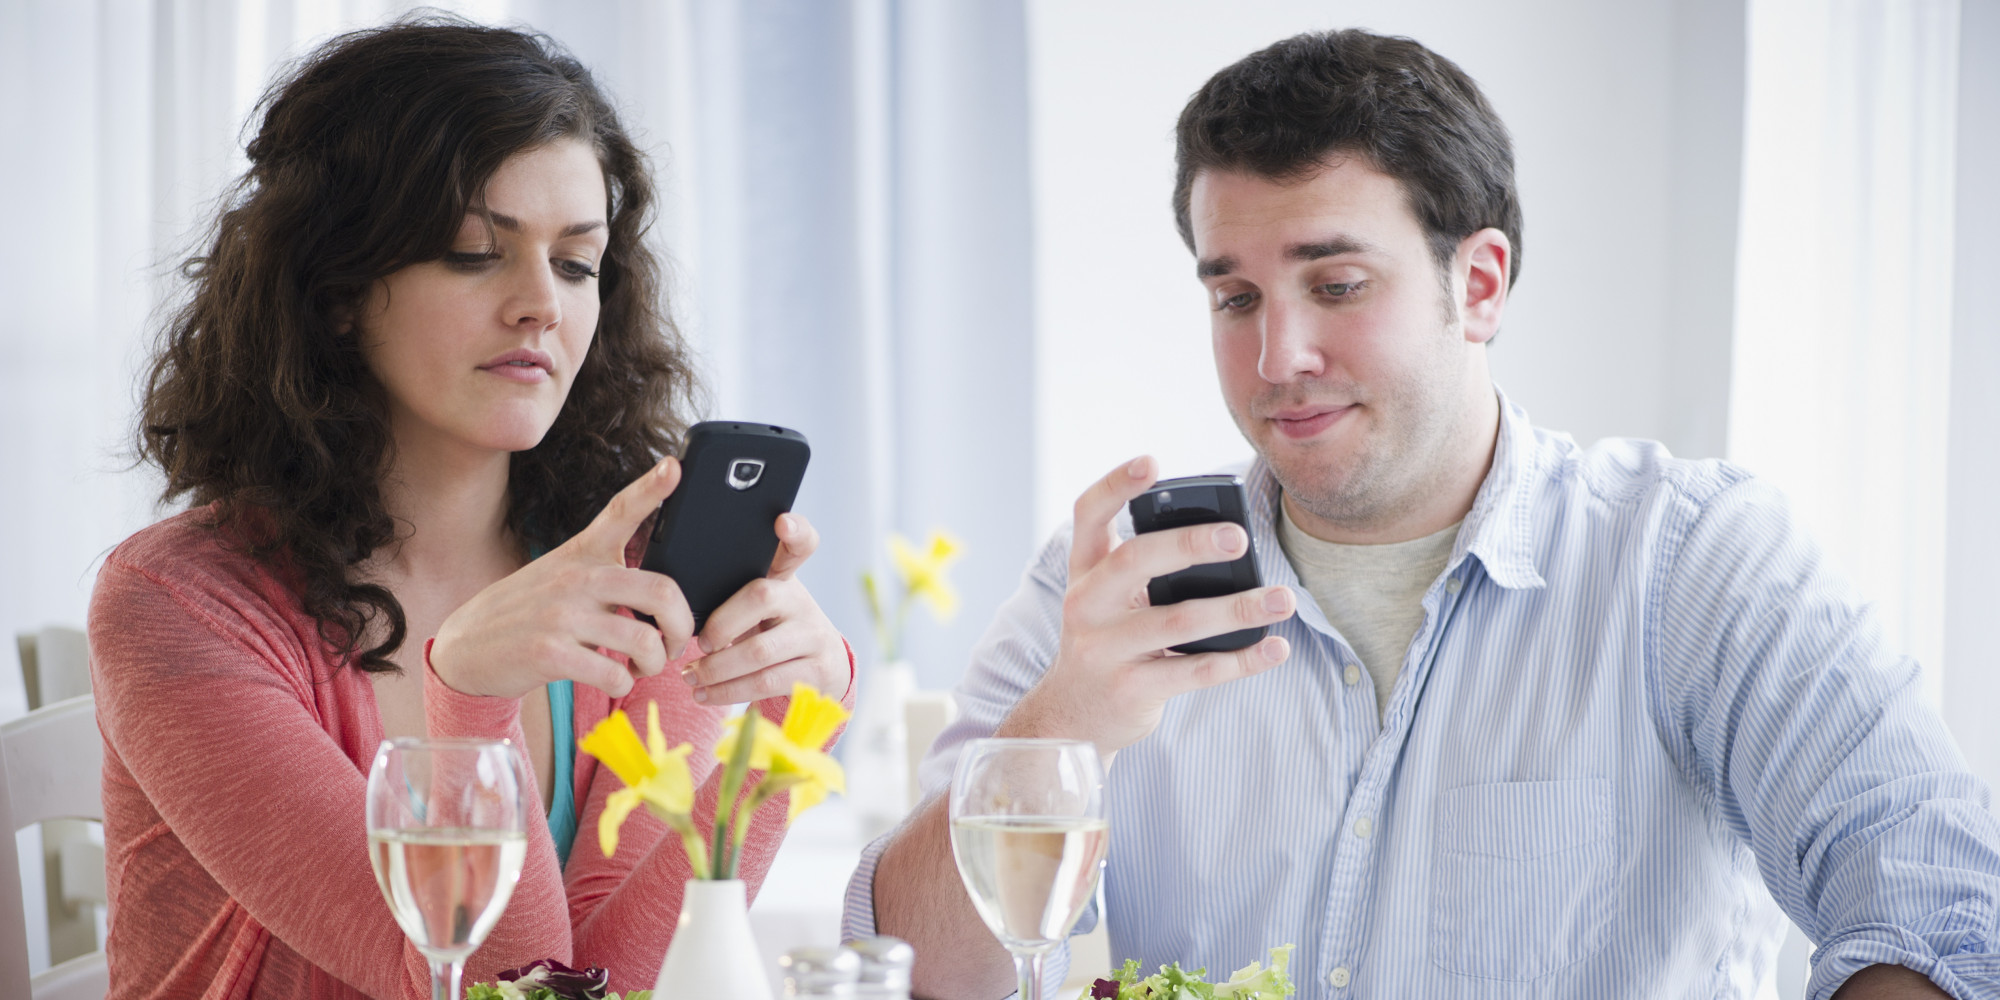 How dating apps have ruined dating